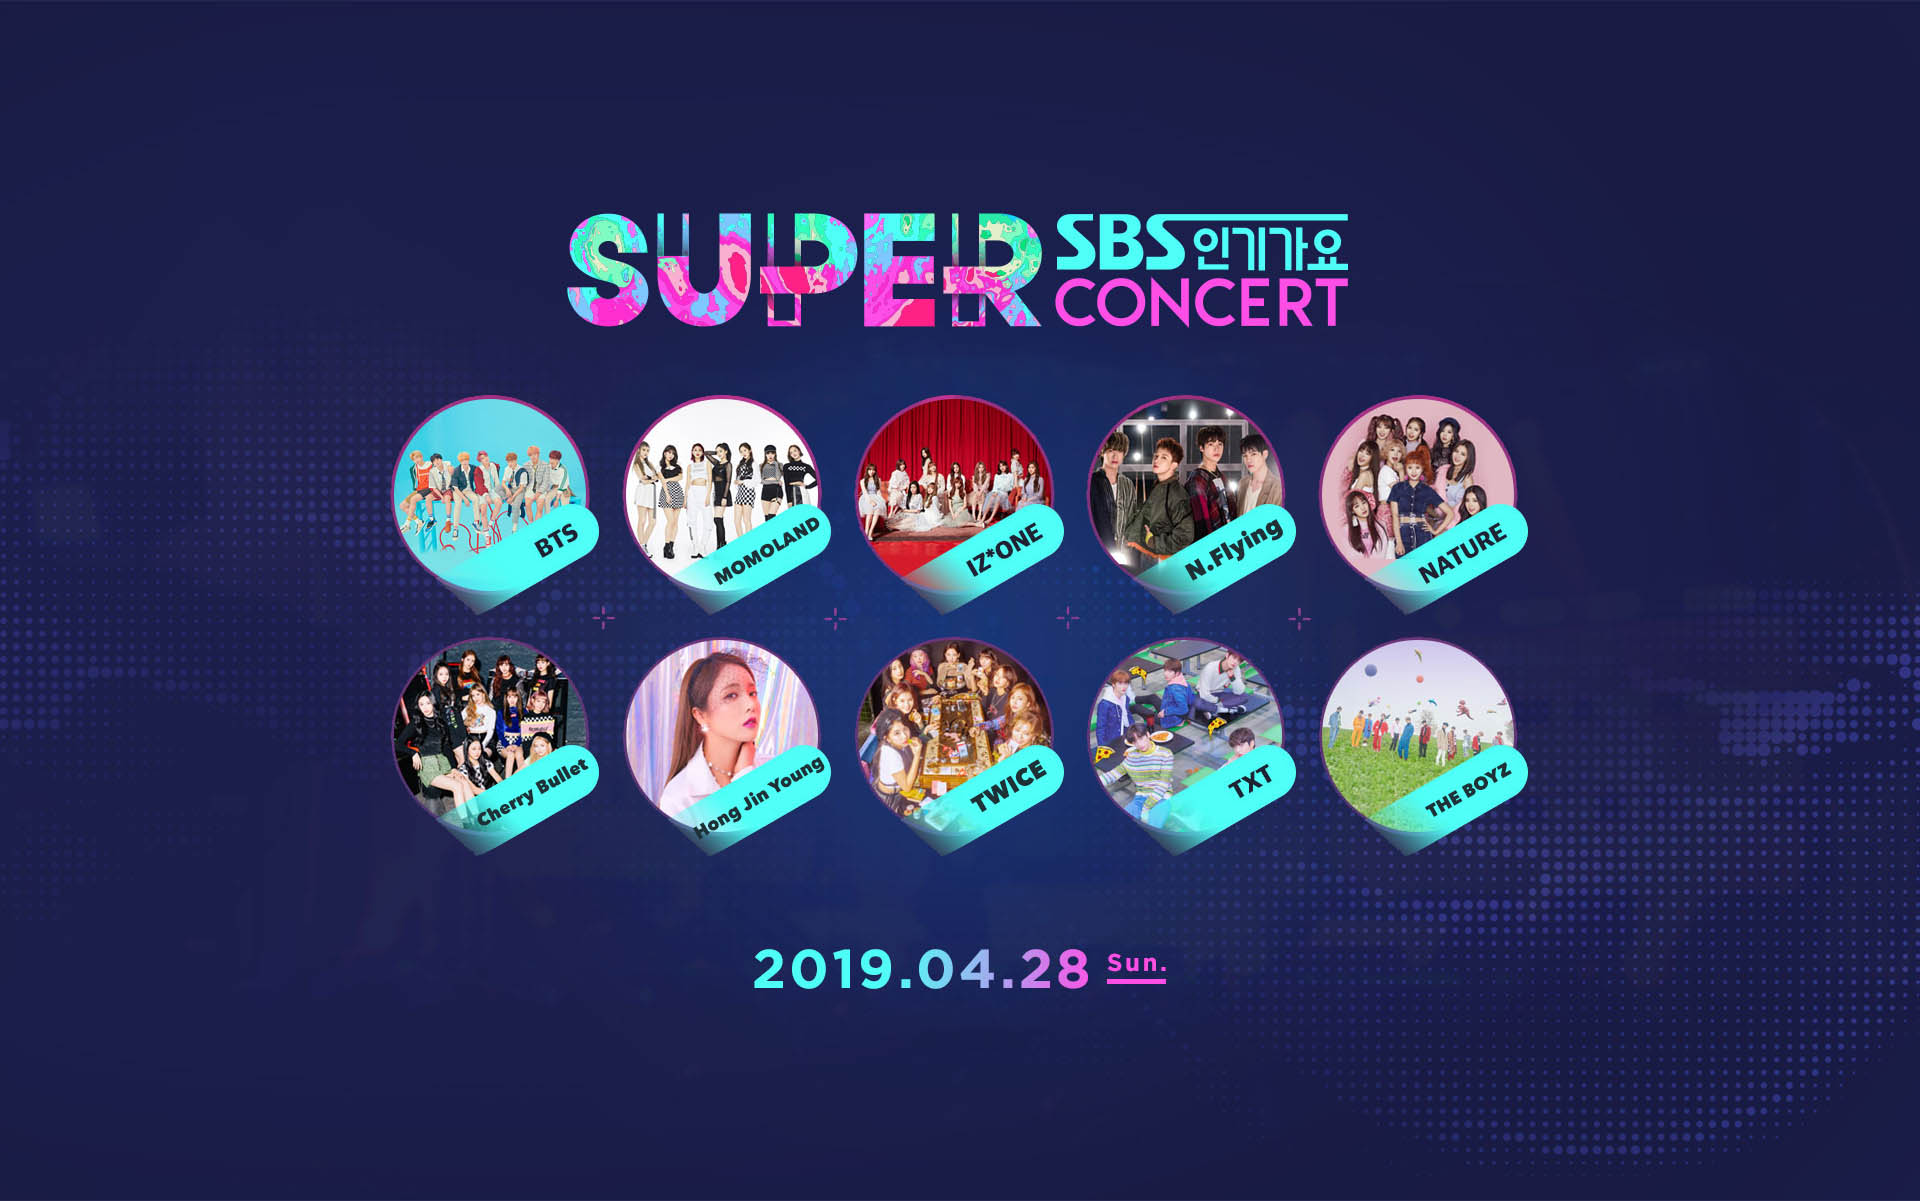 [Ground Seat] SBS Inkigayo 2019 Super Concert with Shuttle Bus tour